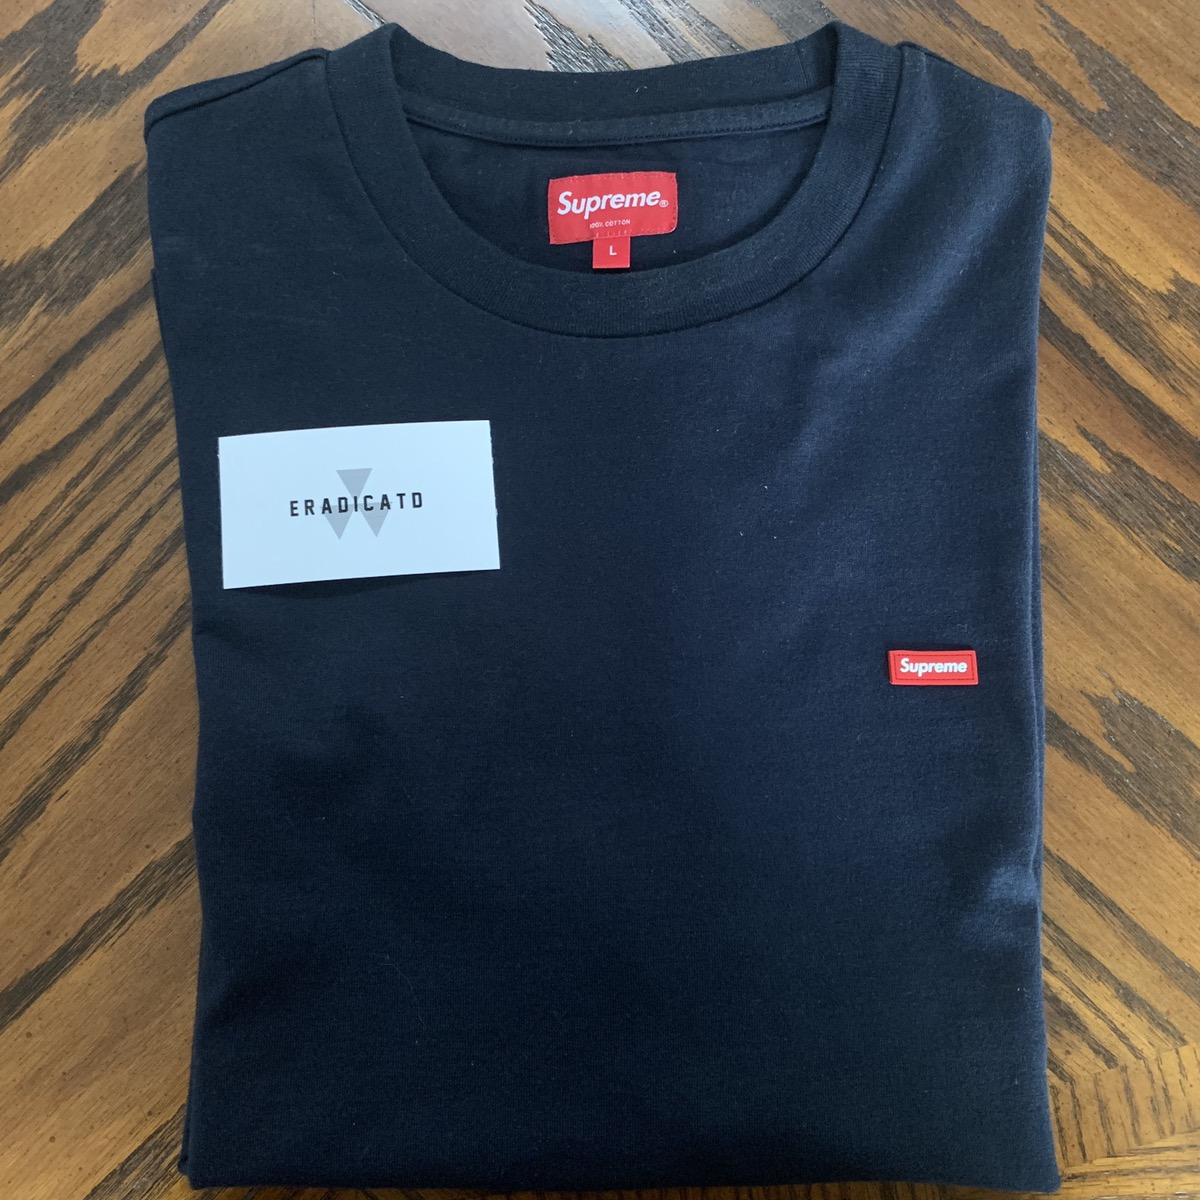 9a8bf65ece41 Supreme Supreme Ss19 Small Box Logo Tee | Navy | Grailed